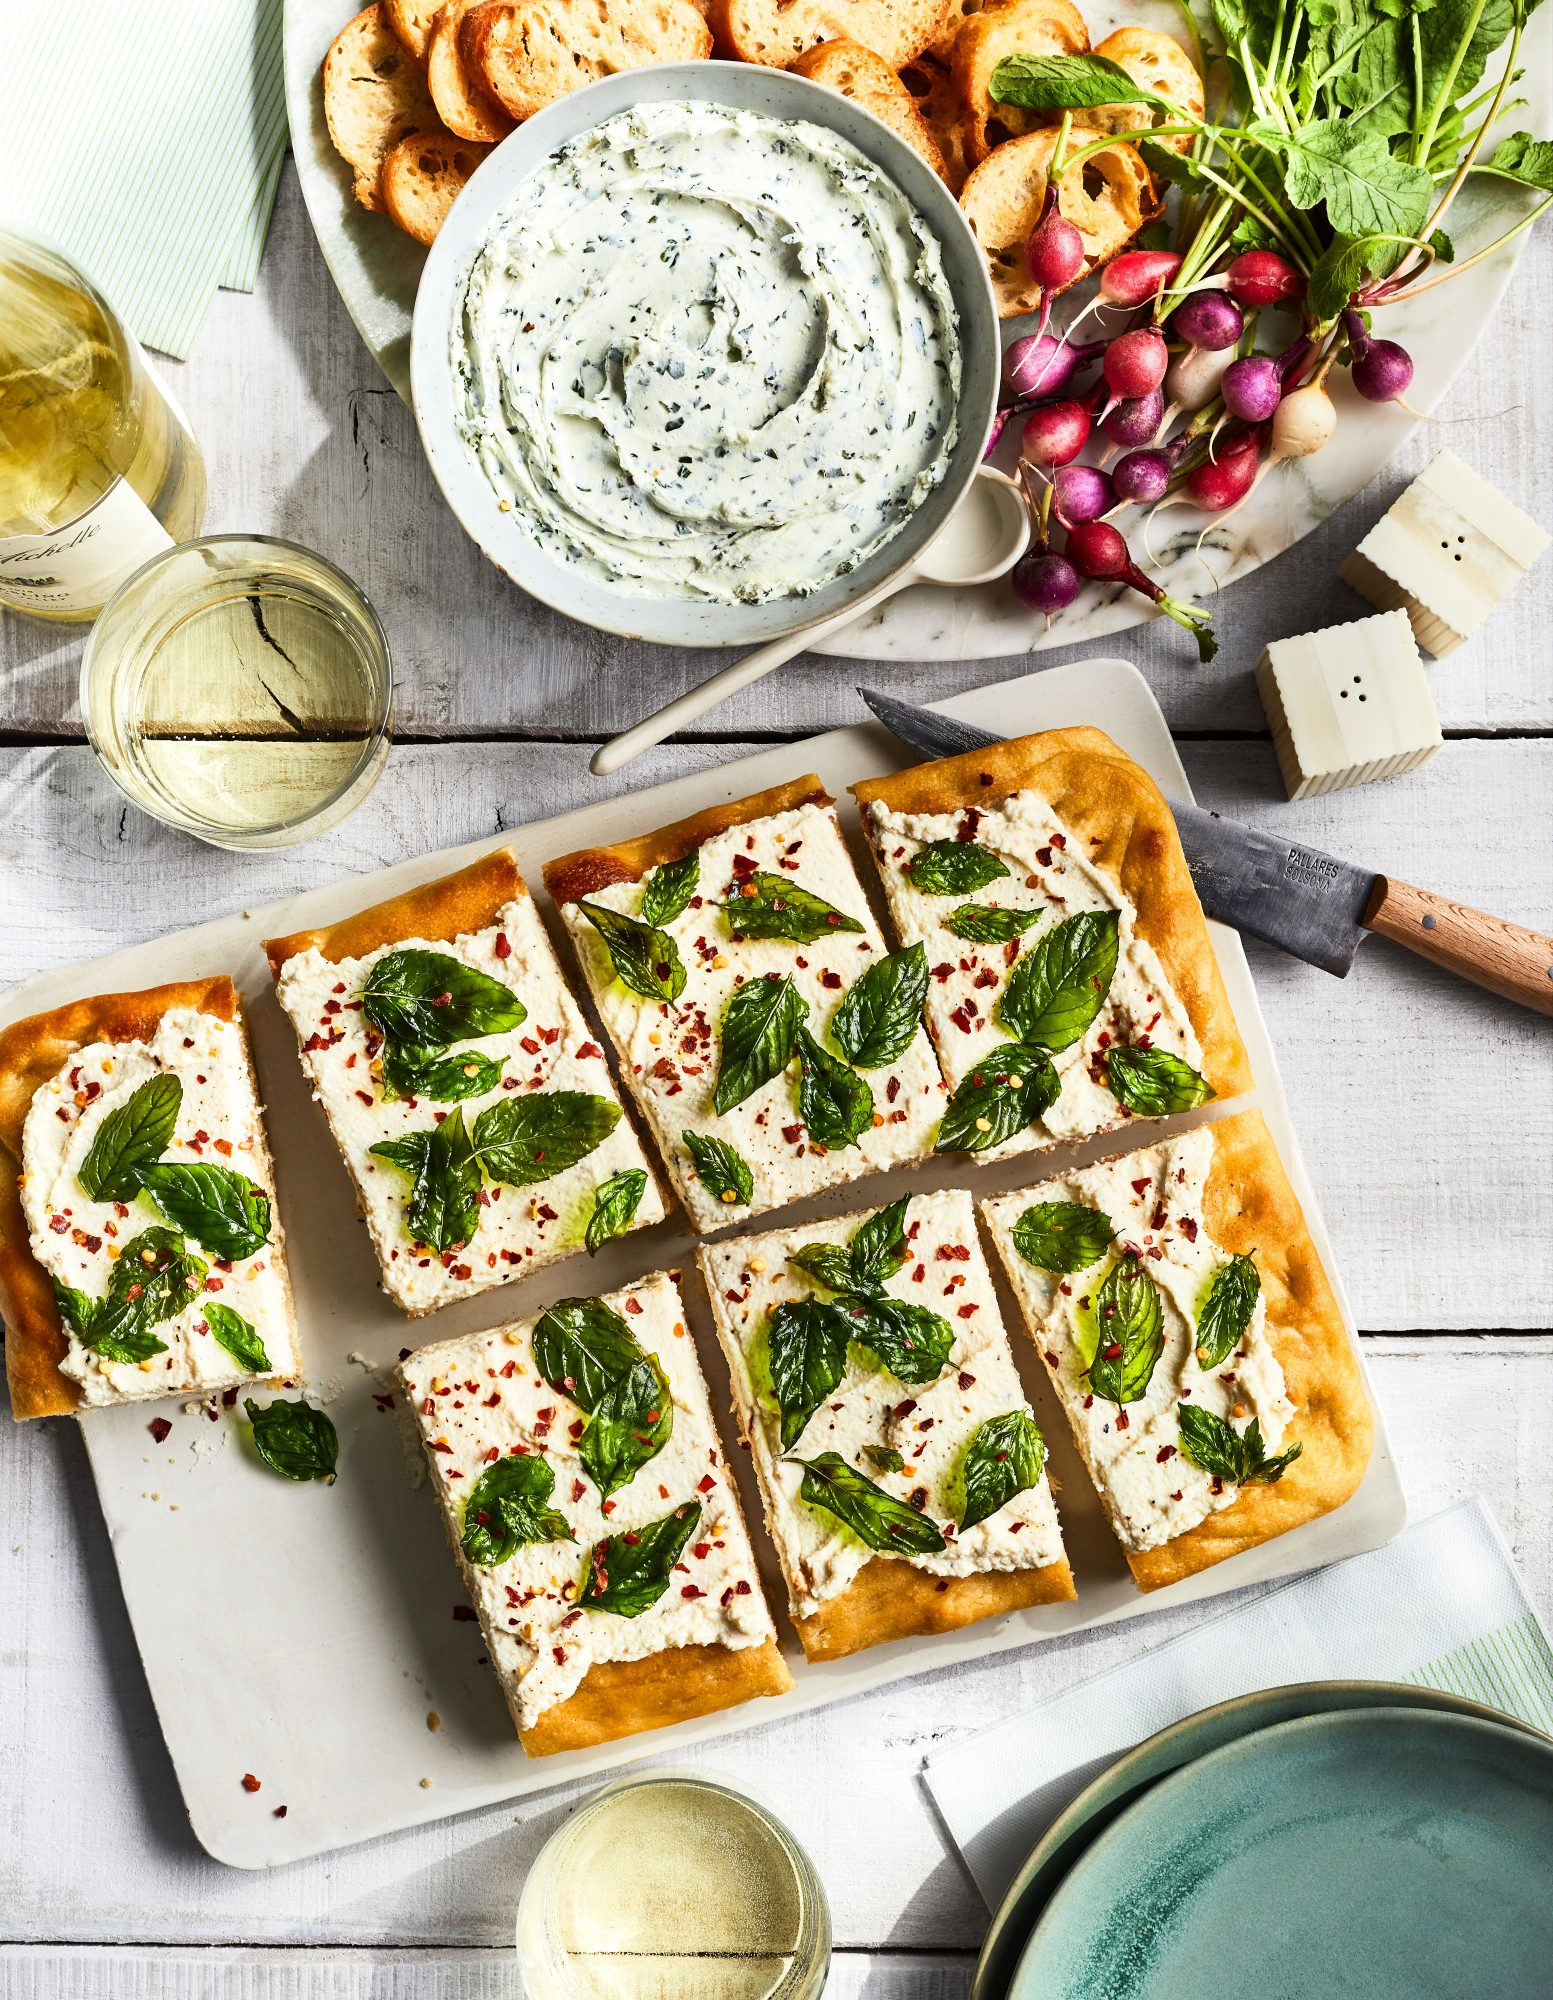 Herbed-Goat Cheese Spread